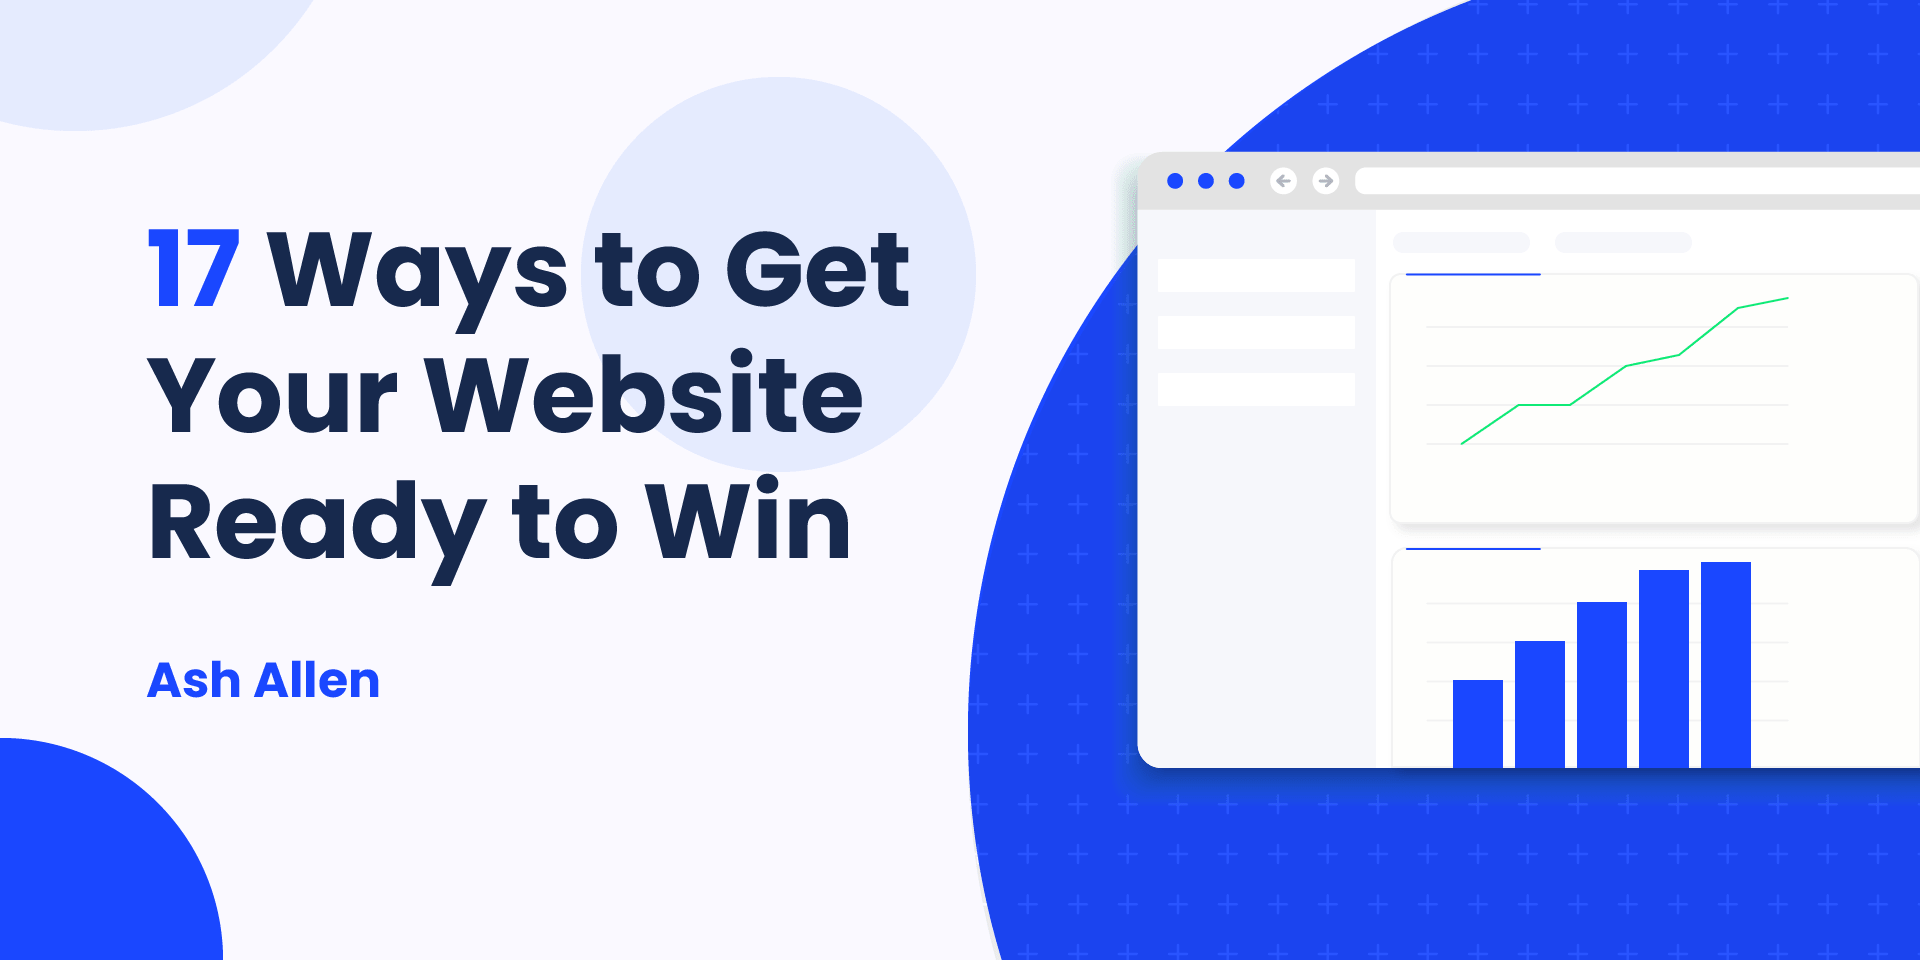 Learn about 17 different ways that you can update your website to help it grow and drive more traffic. The post covers topics such as page speed, content writing, and SEO (search engine optimisation).